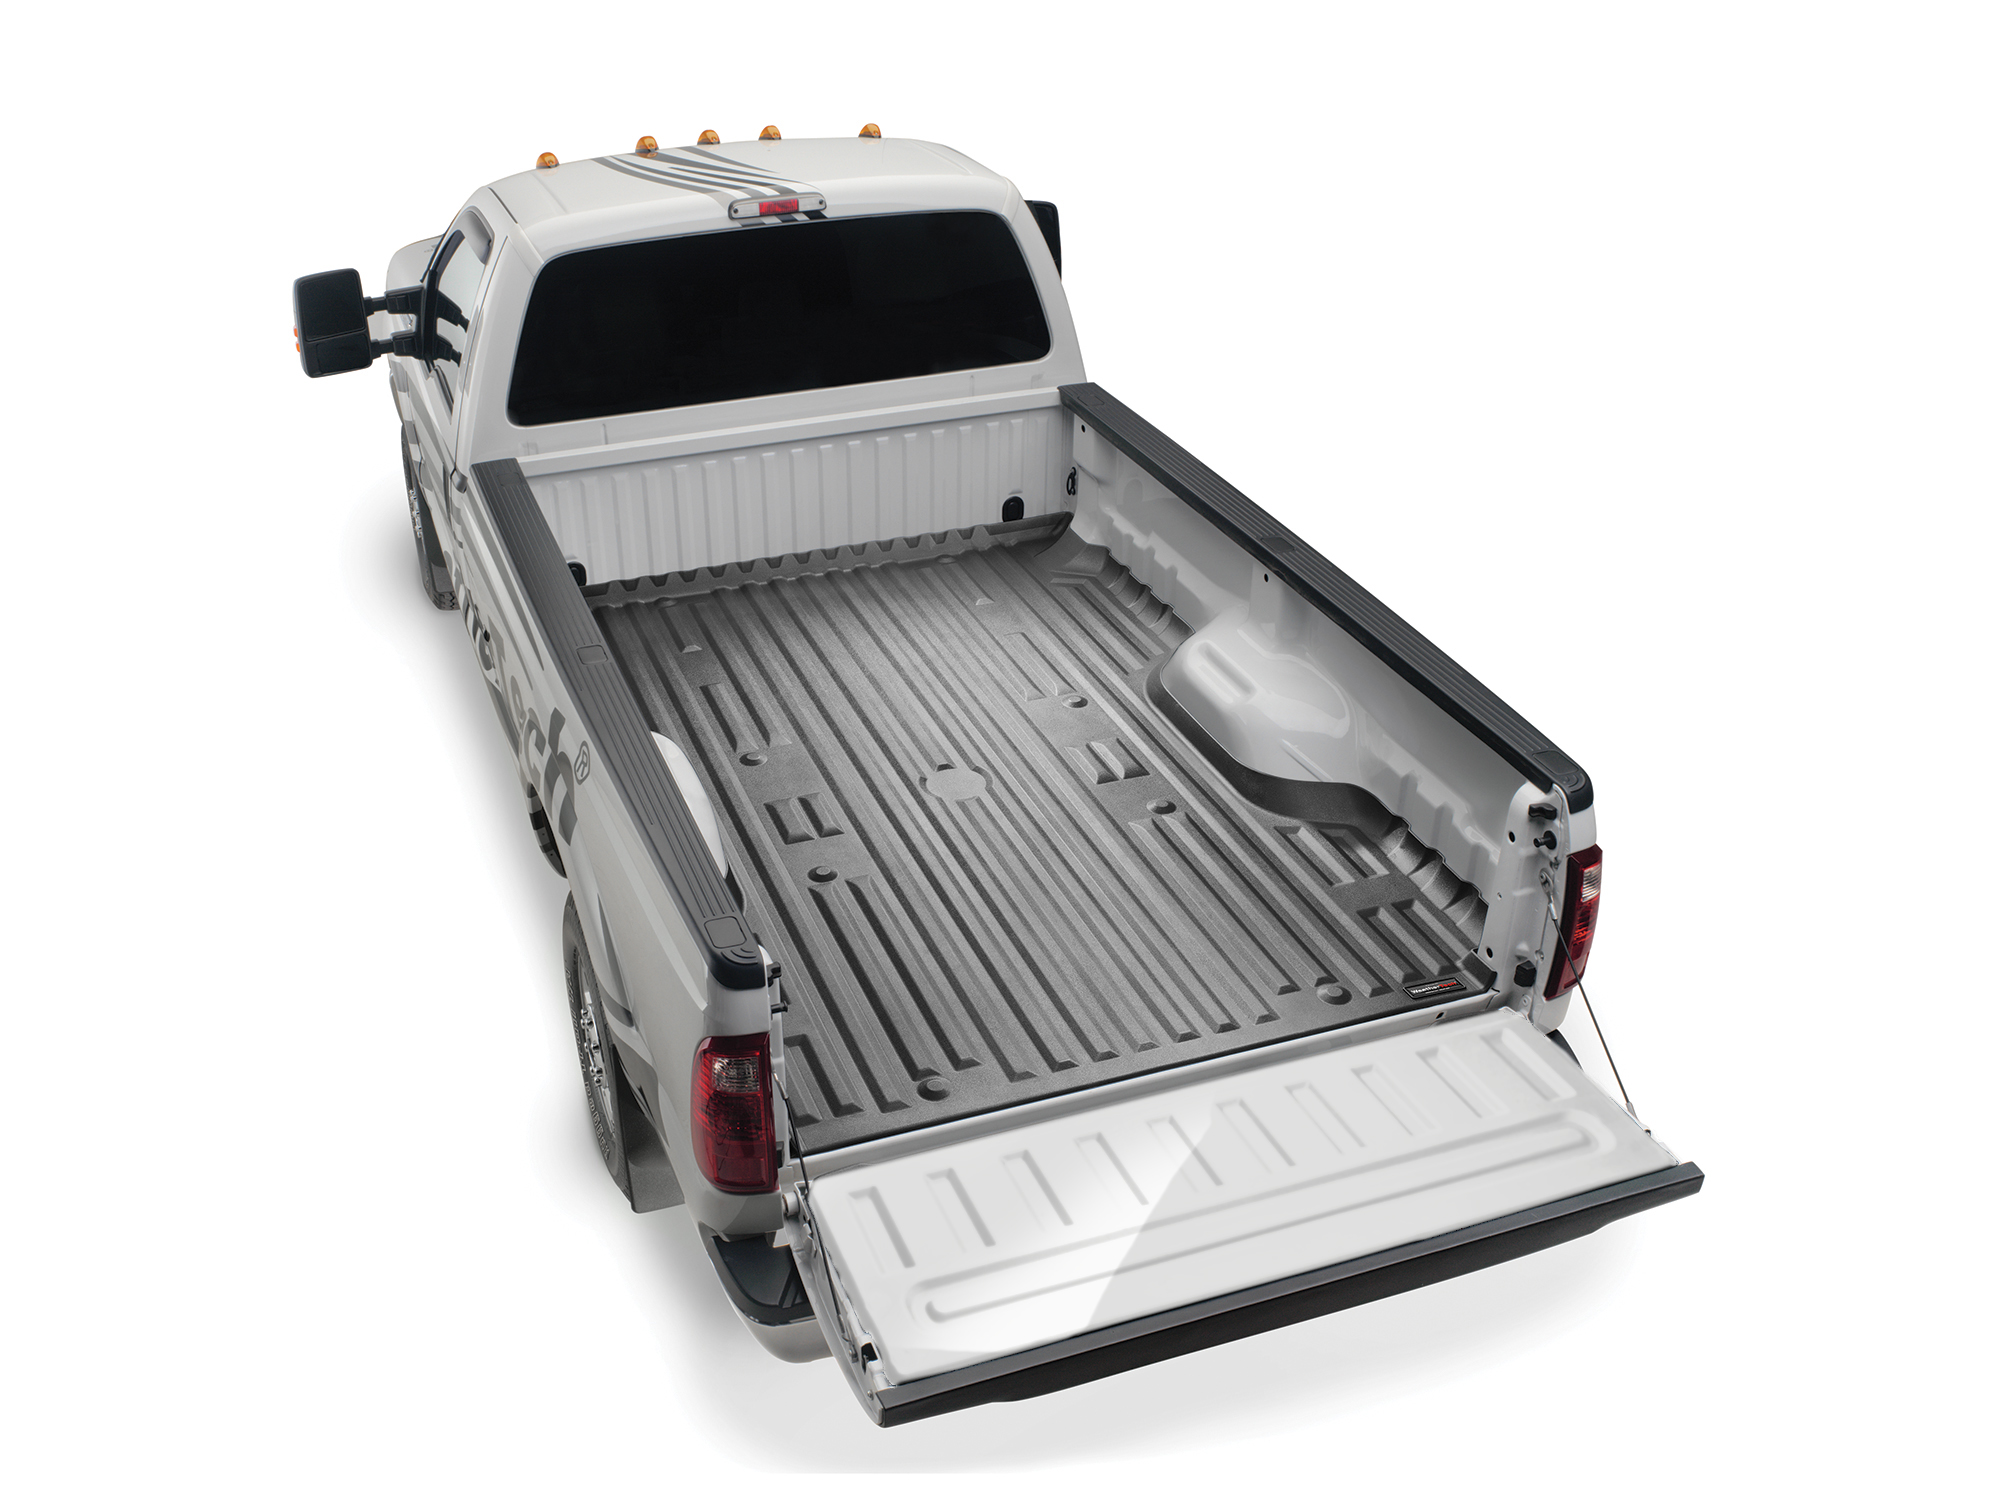 WeatherTech TechLiner for Ford Super Duty.